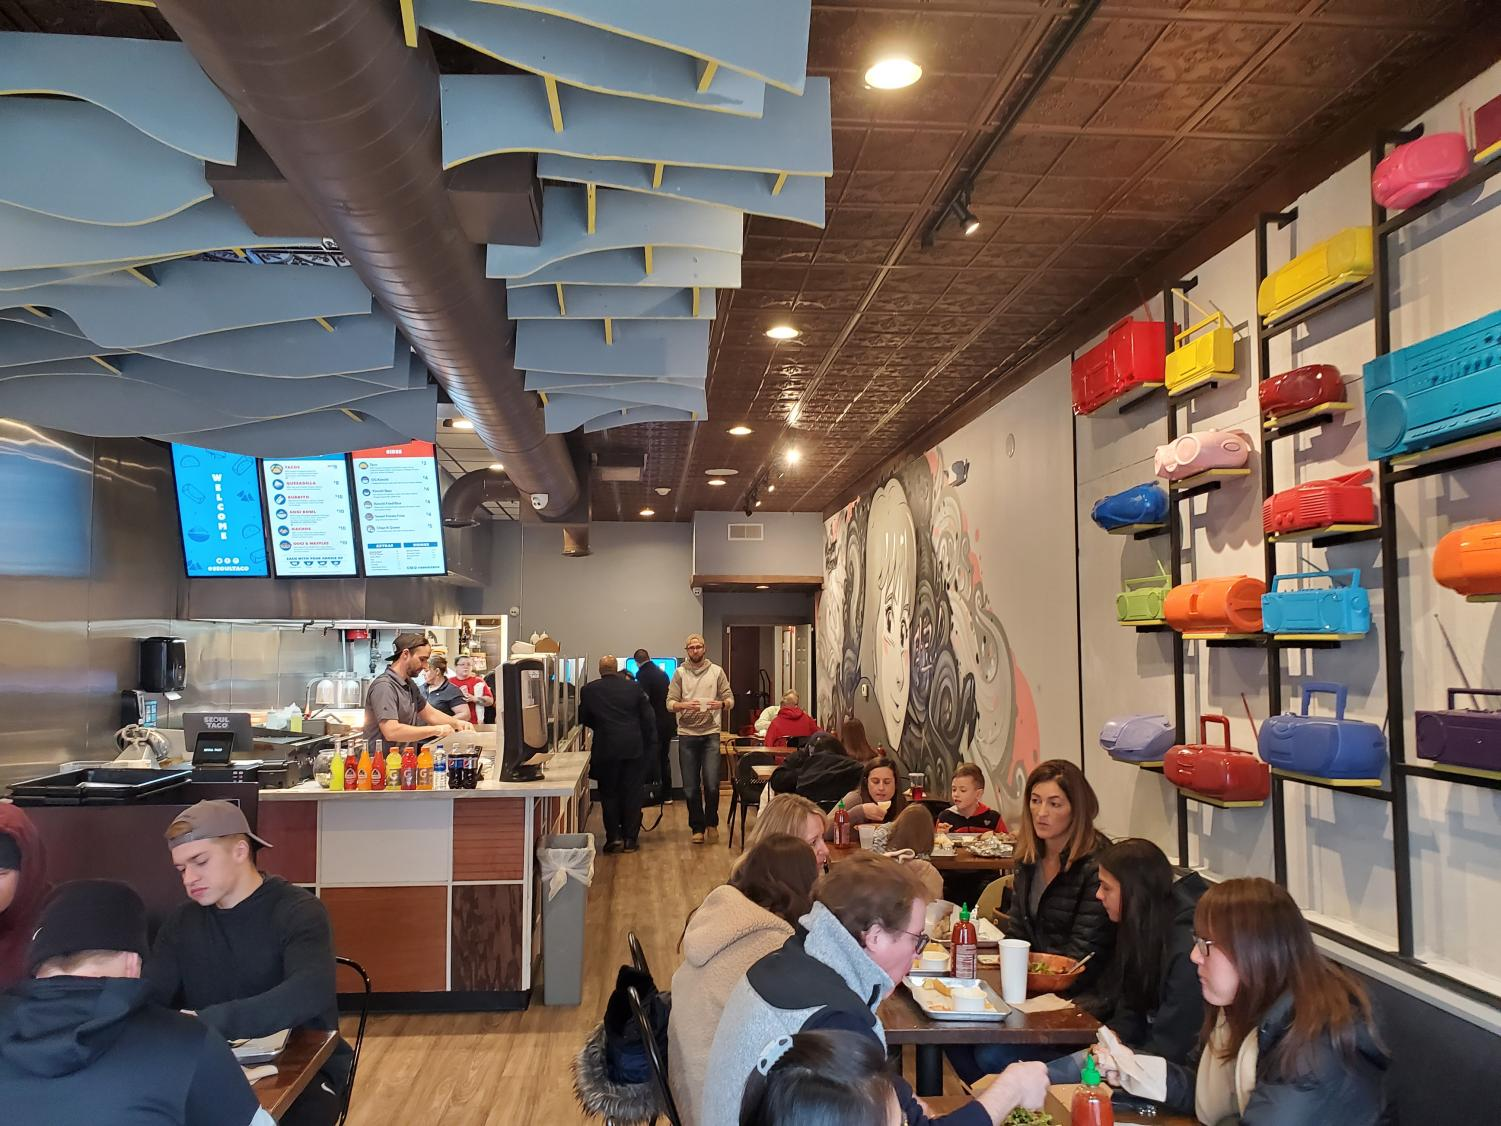 Seoul Taco is located near the corner of Washington Street and Jefferson Avenue in downtown Naperville.